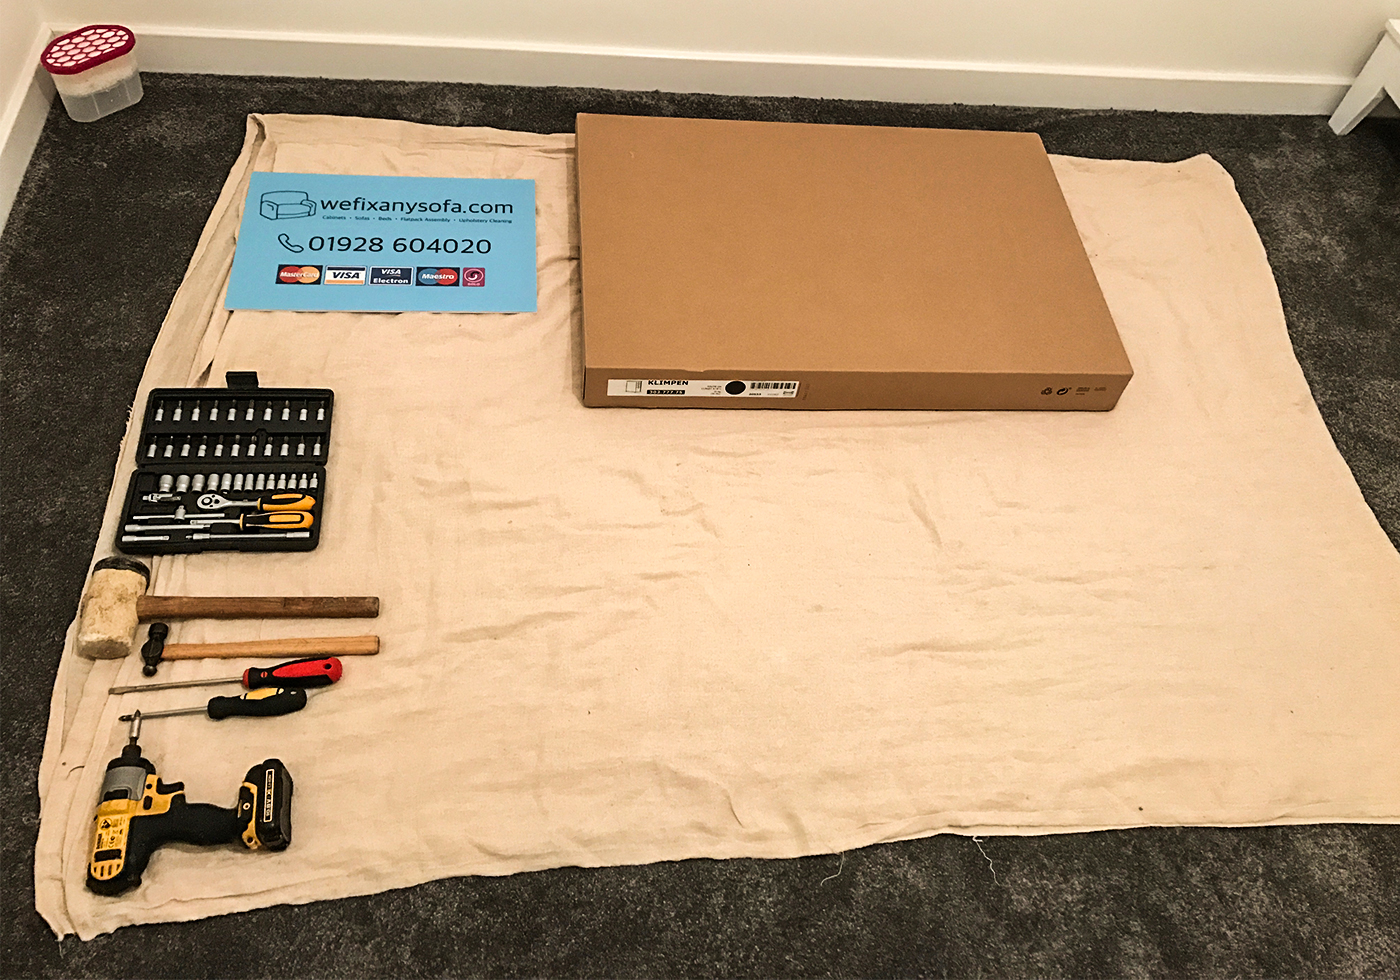 Flatpack Assembly Set Up With Tools